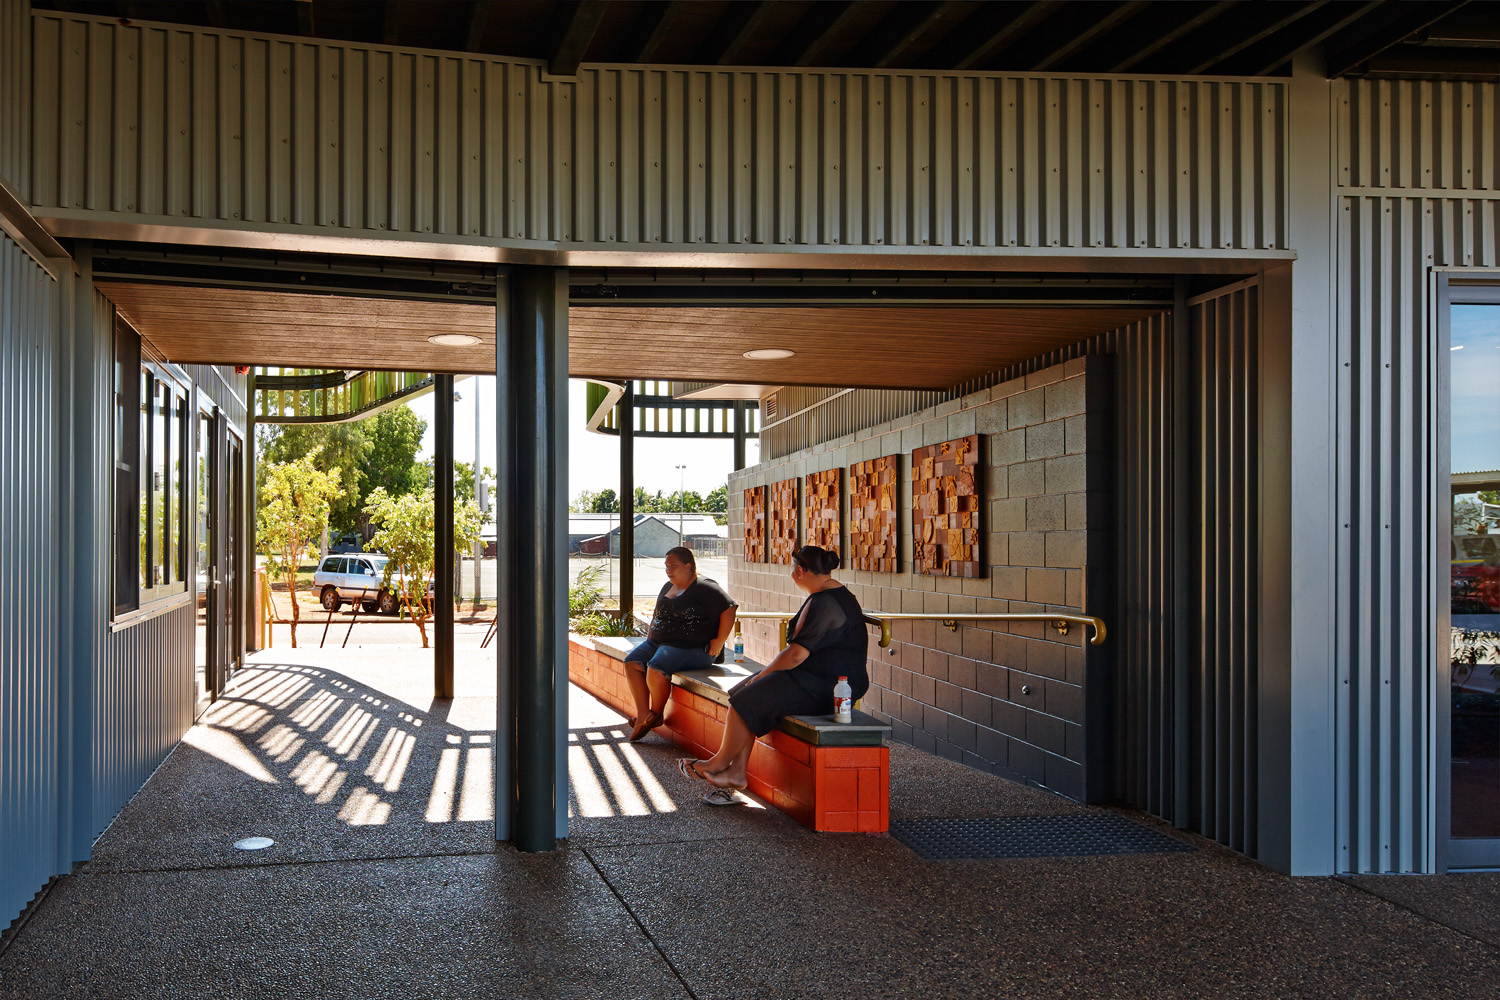 The MG/GT Administration Building in Kununurra, Western Australia, designed by CODA and Mark Phillips Architect (2013) serves two Indigenous organisations in the wide Kimberley region. Photo: Peter Bennetts